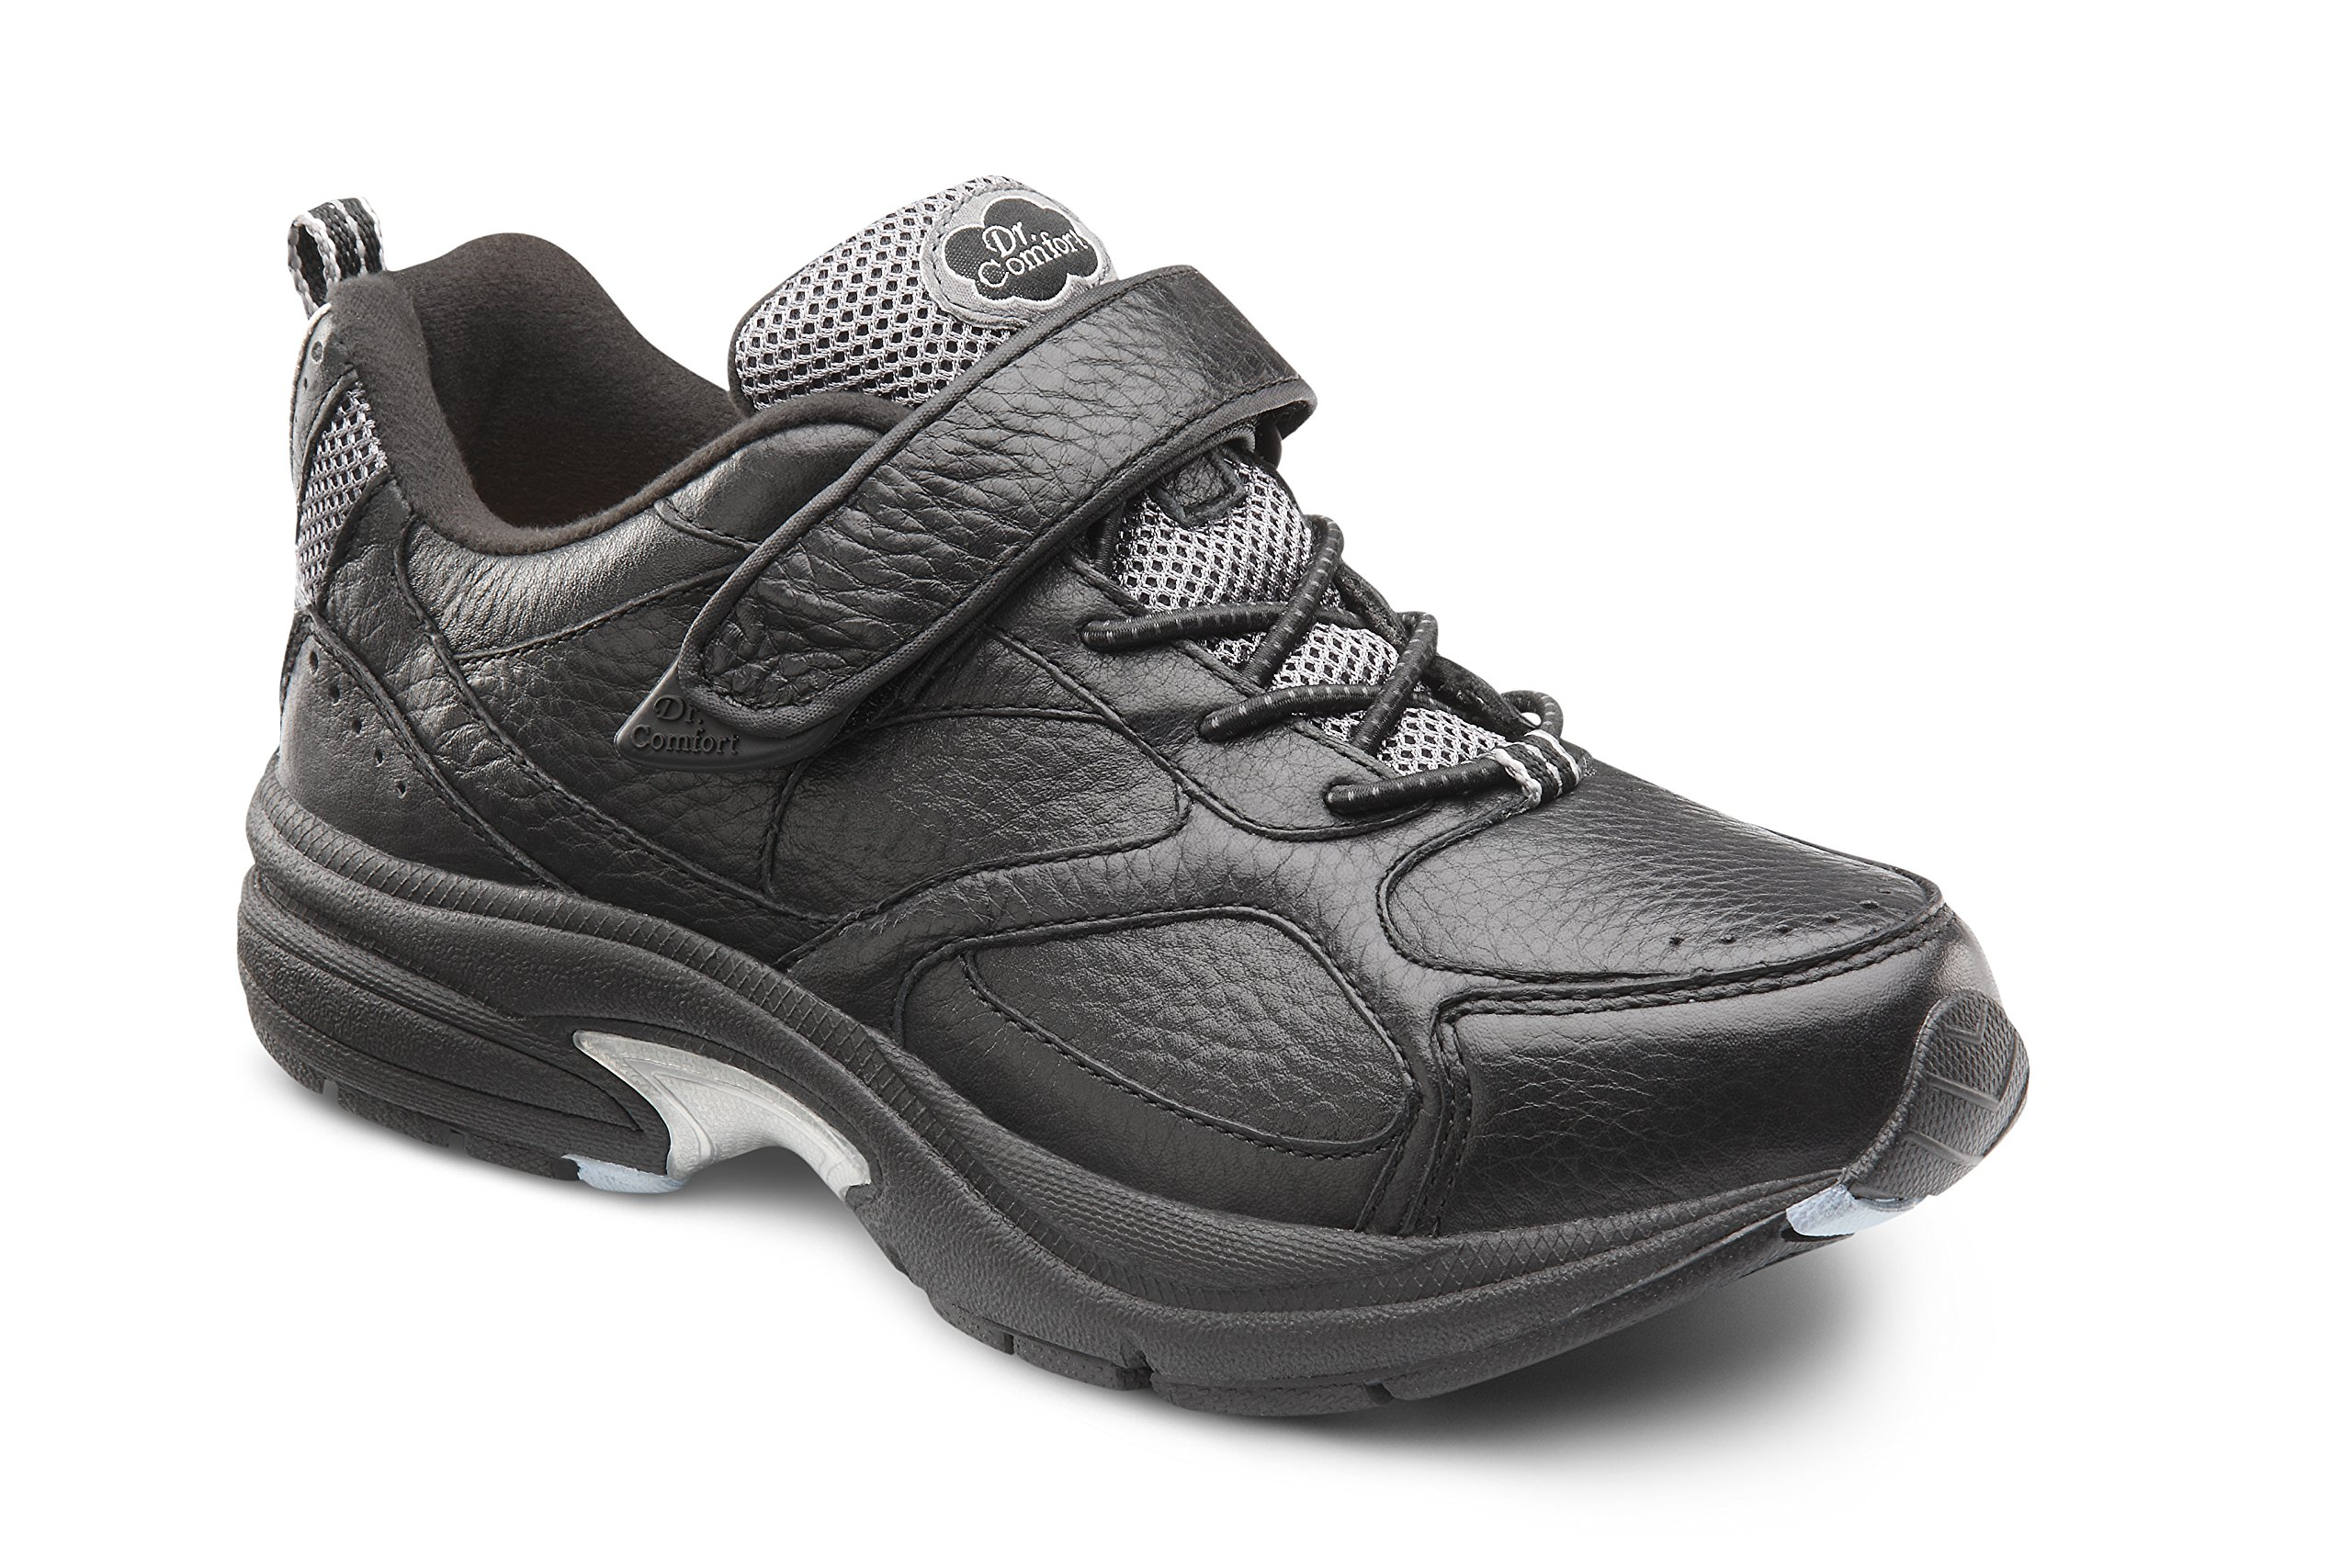 Dr. Comfort Women's Spirit Black Diabetic Athletic Shoes